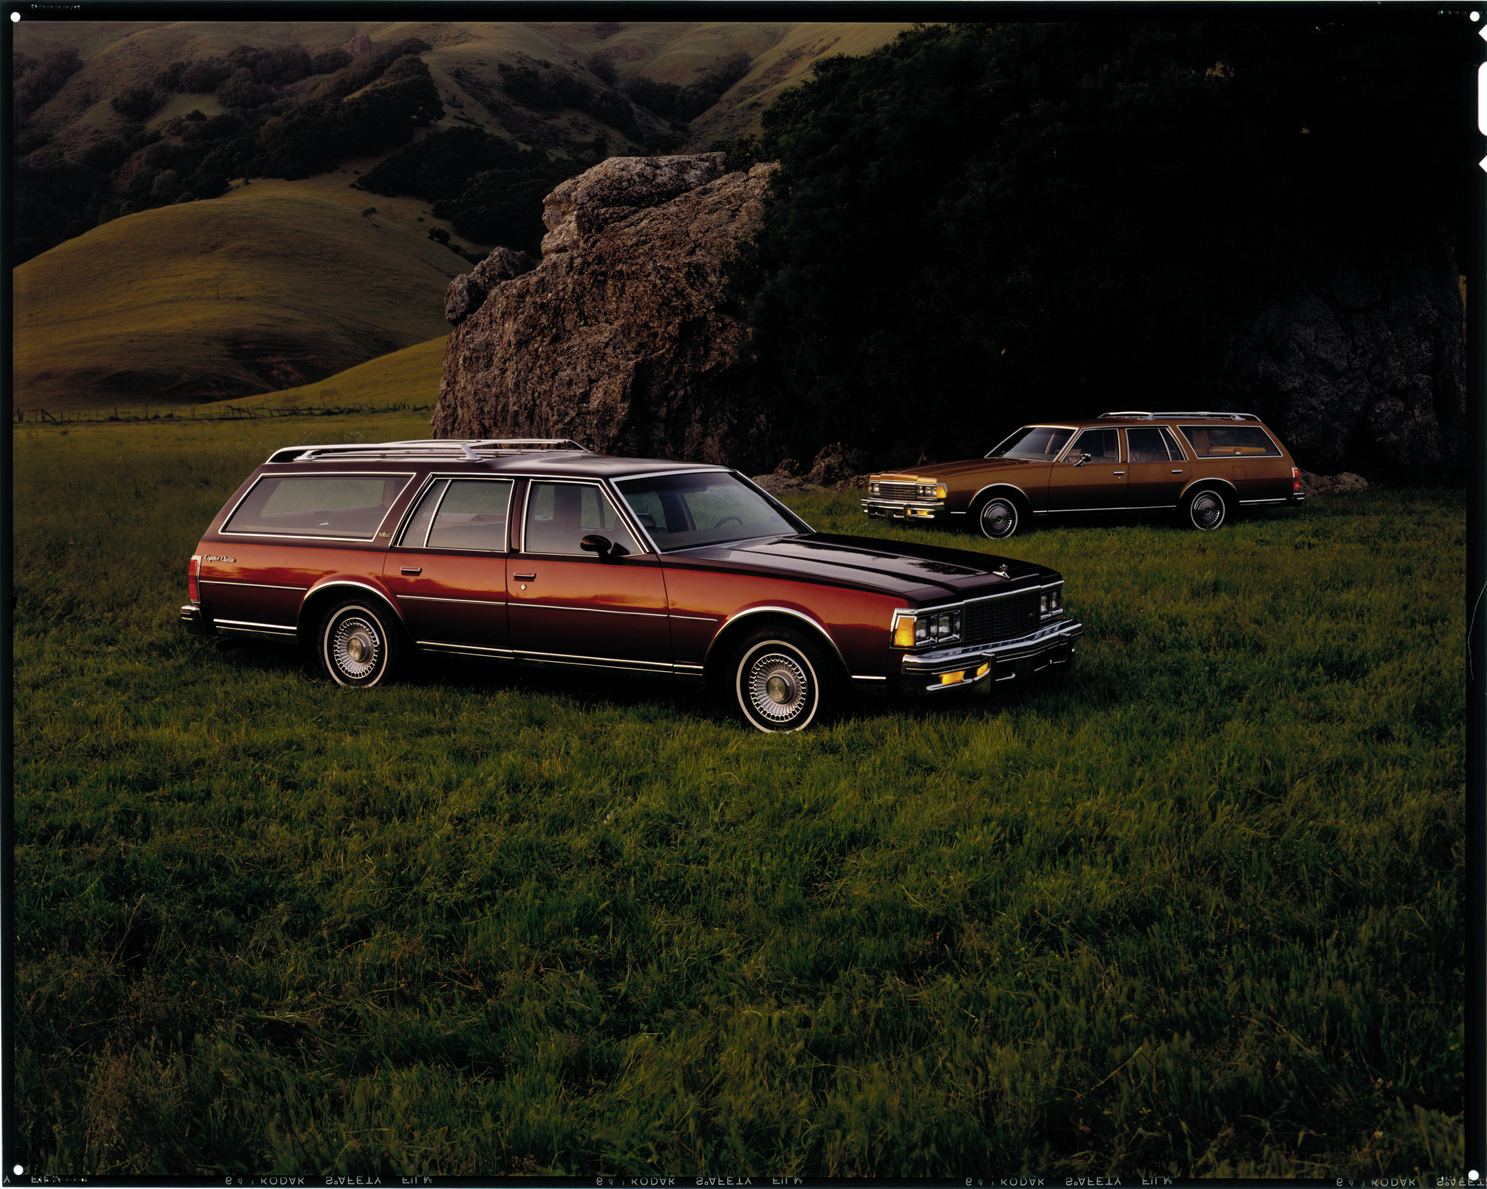 1985 chevrolet caprice classic station wagons dpl dams detroit public library digital collections